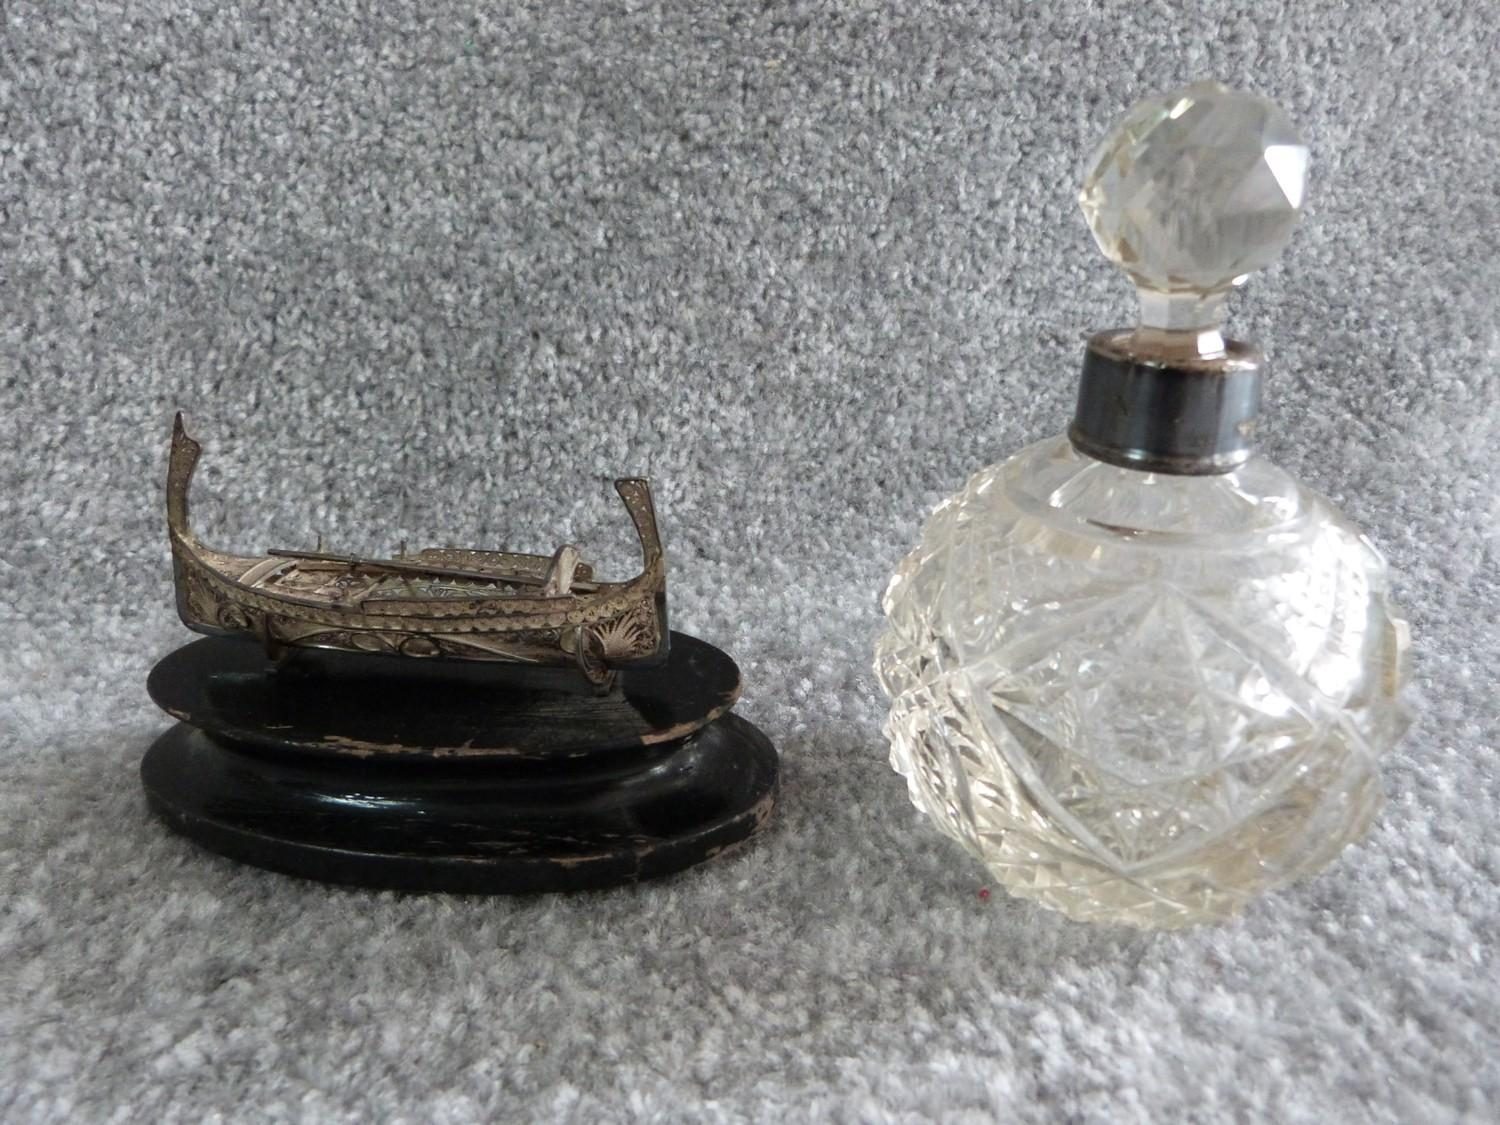 Lot 4 - A silver collared cut glass perfume bottle and a silver wire boat on wooden stand. Perfume bottle